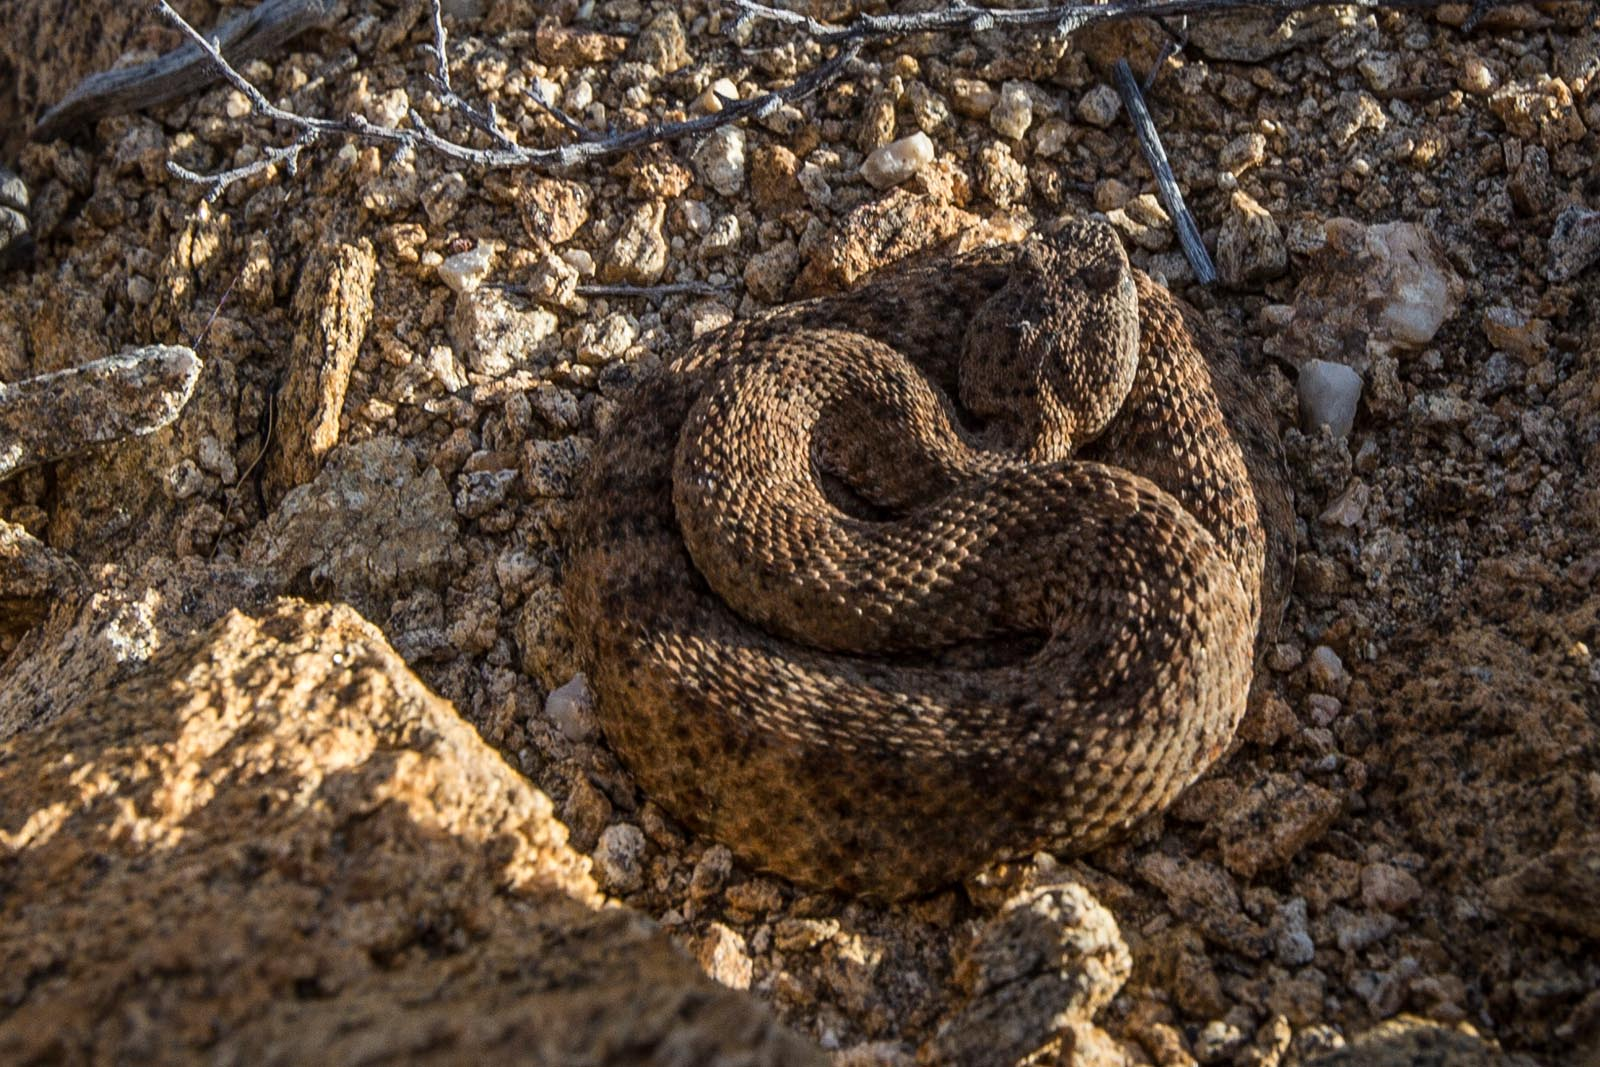 Andrew's first rattlesnake. Good thing he was tiny, cold, unmoving, and super cute!